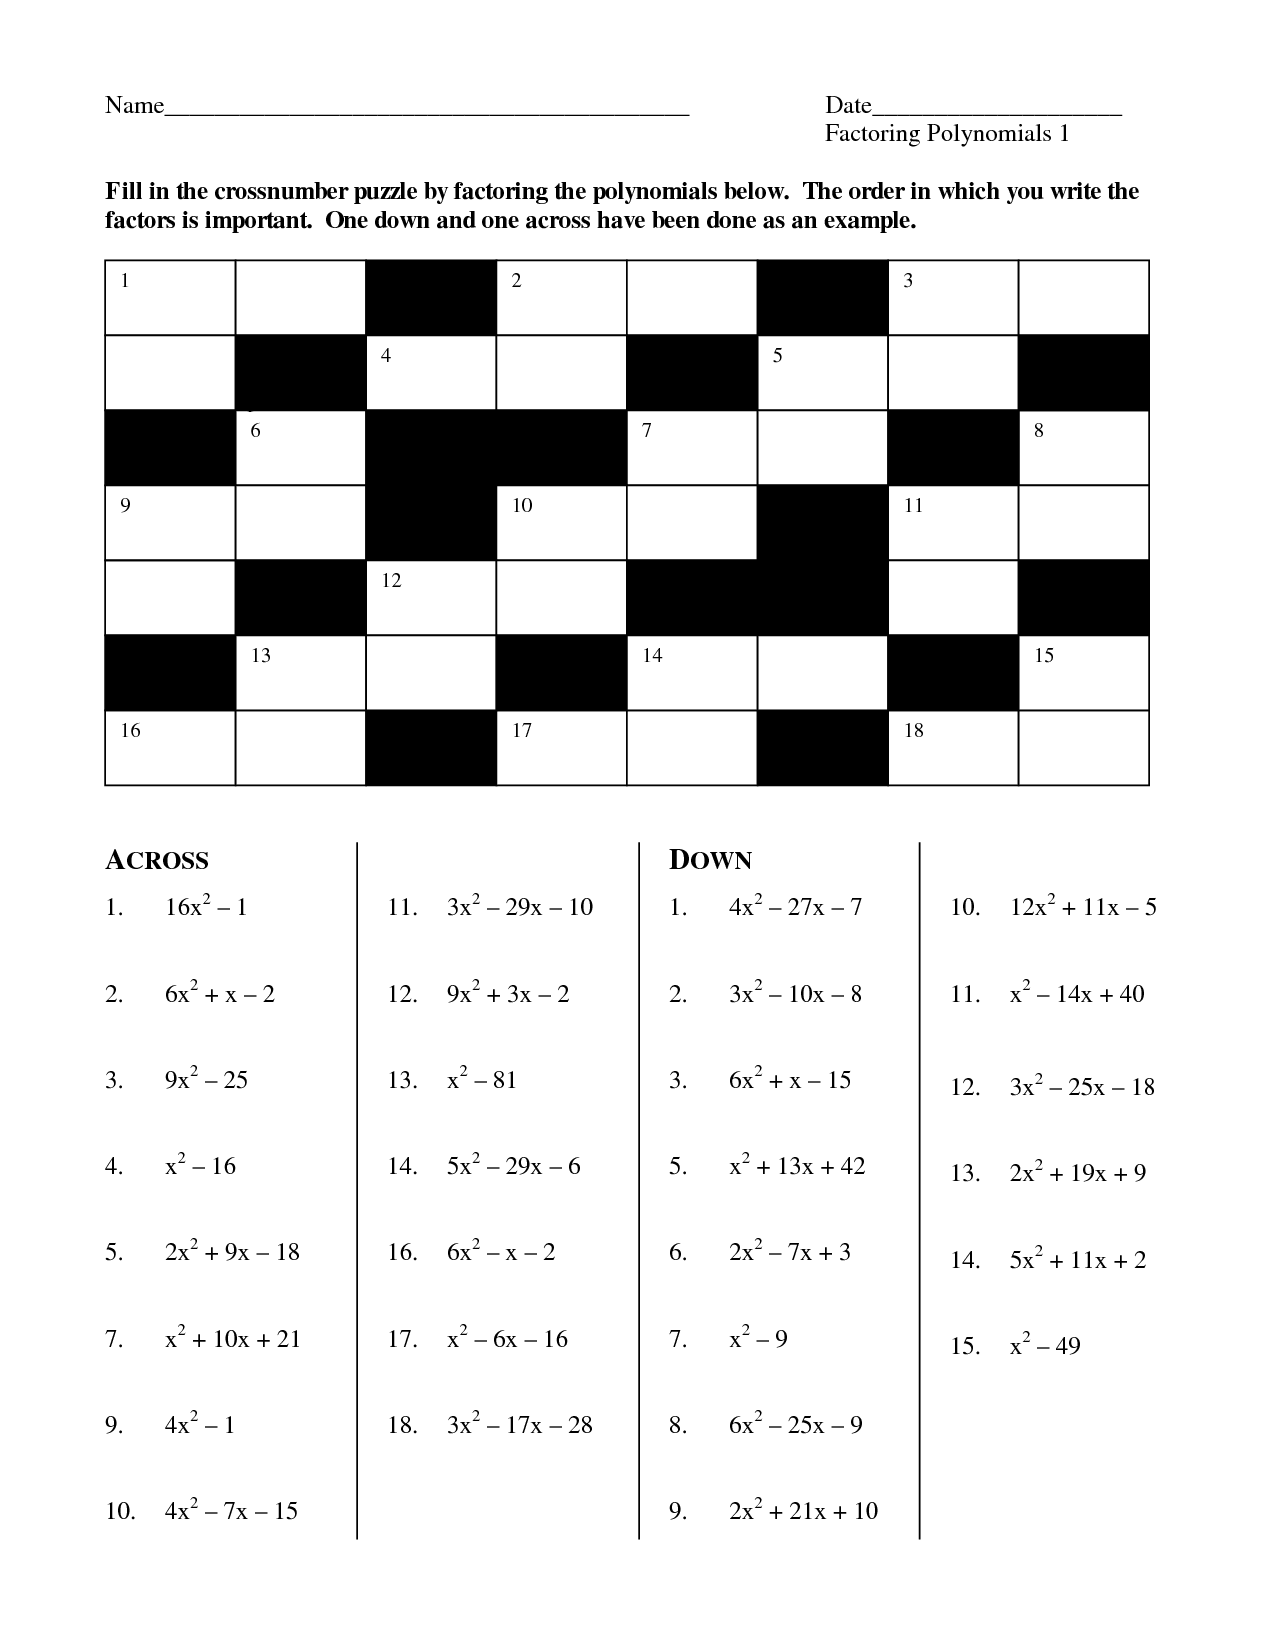 15 Best Images of Factoring Polynomials Puzzle Worksheet